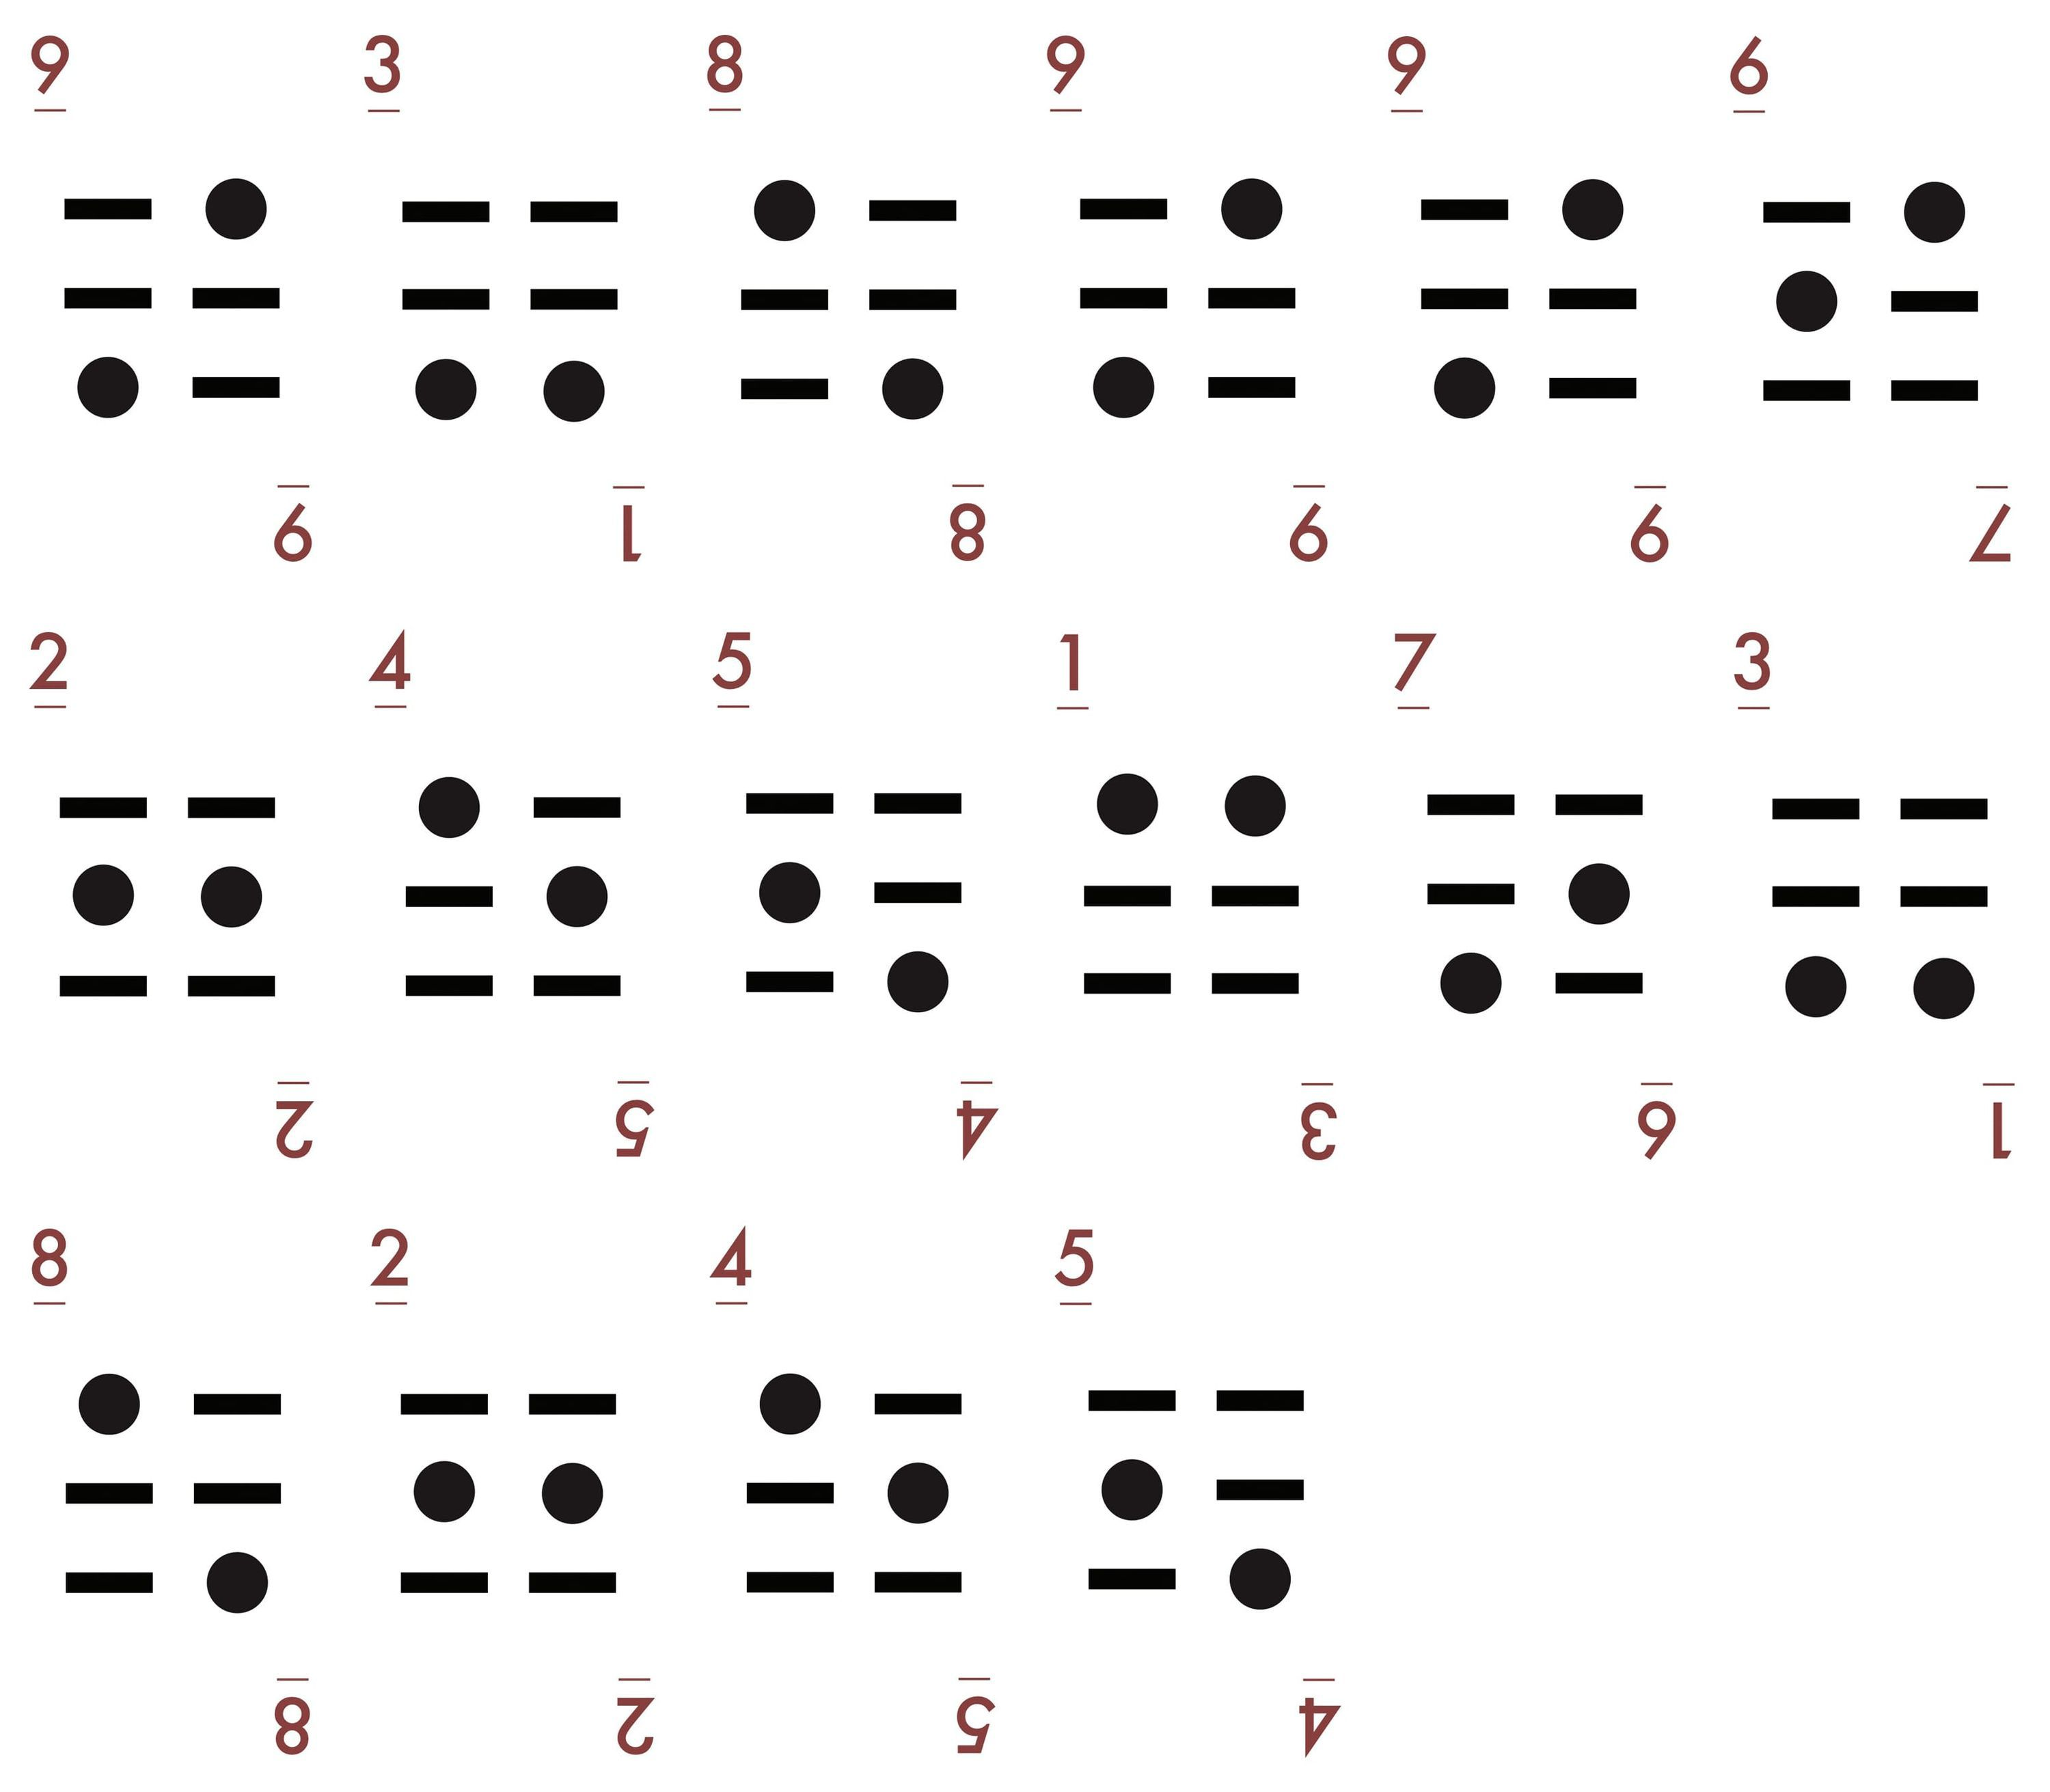 Rehearse this long drum pattern the next time you practice